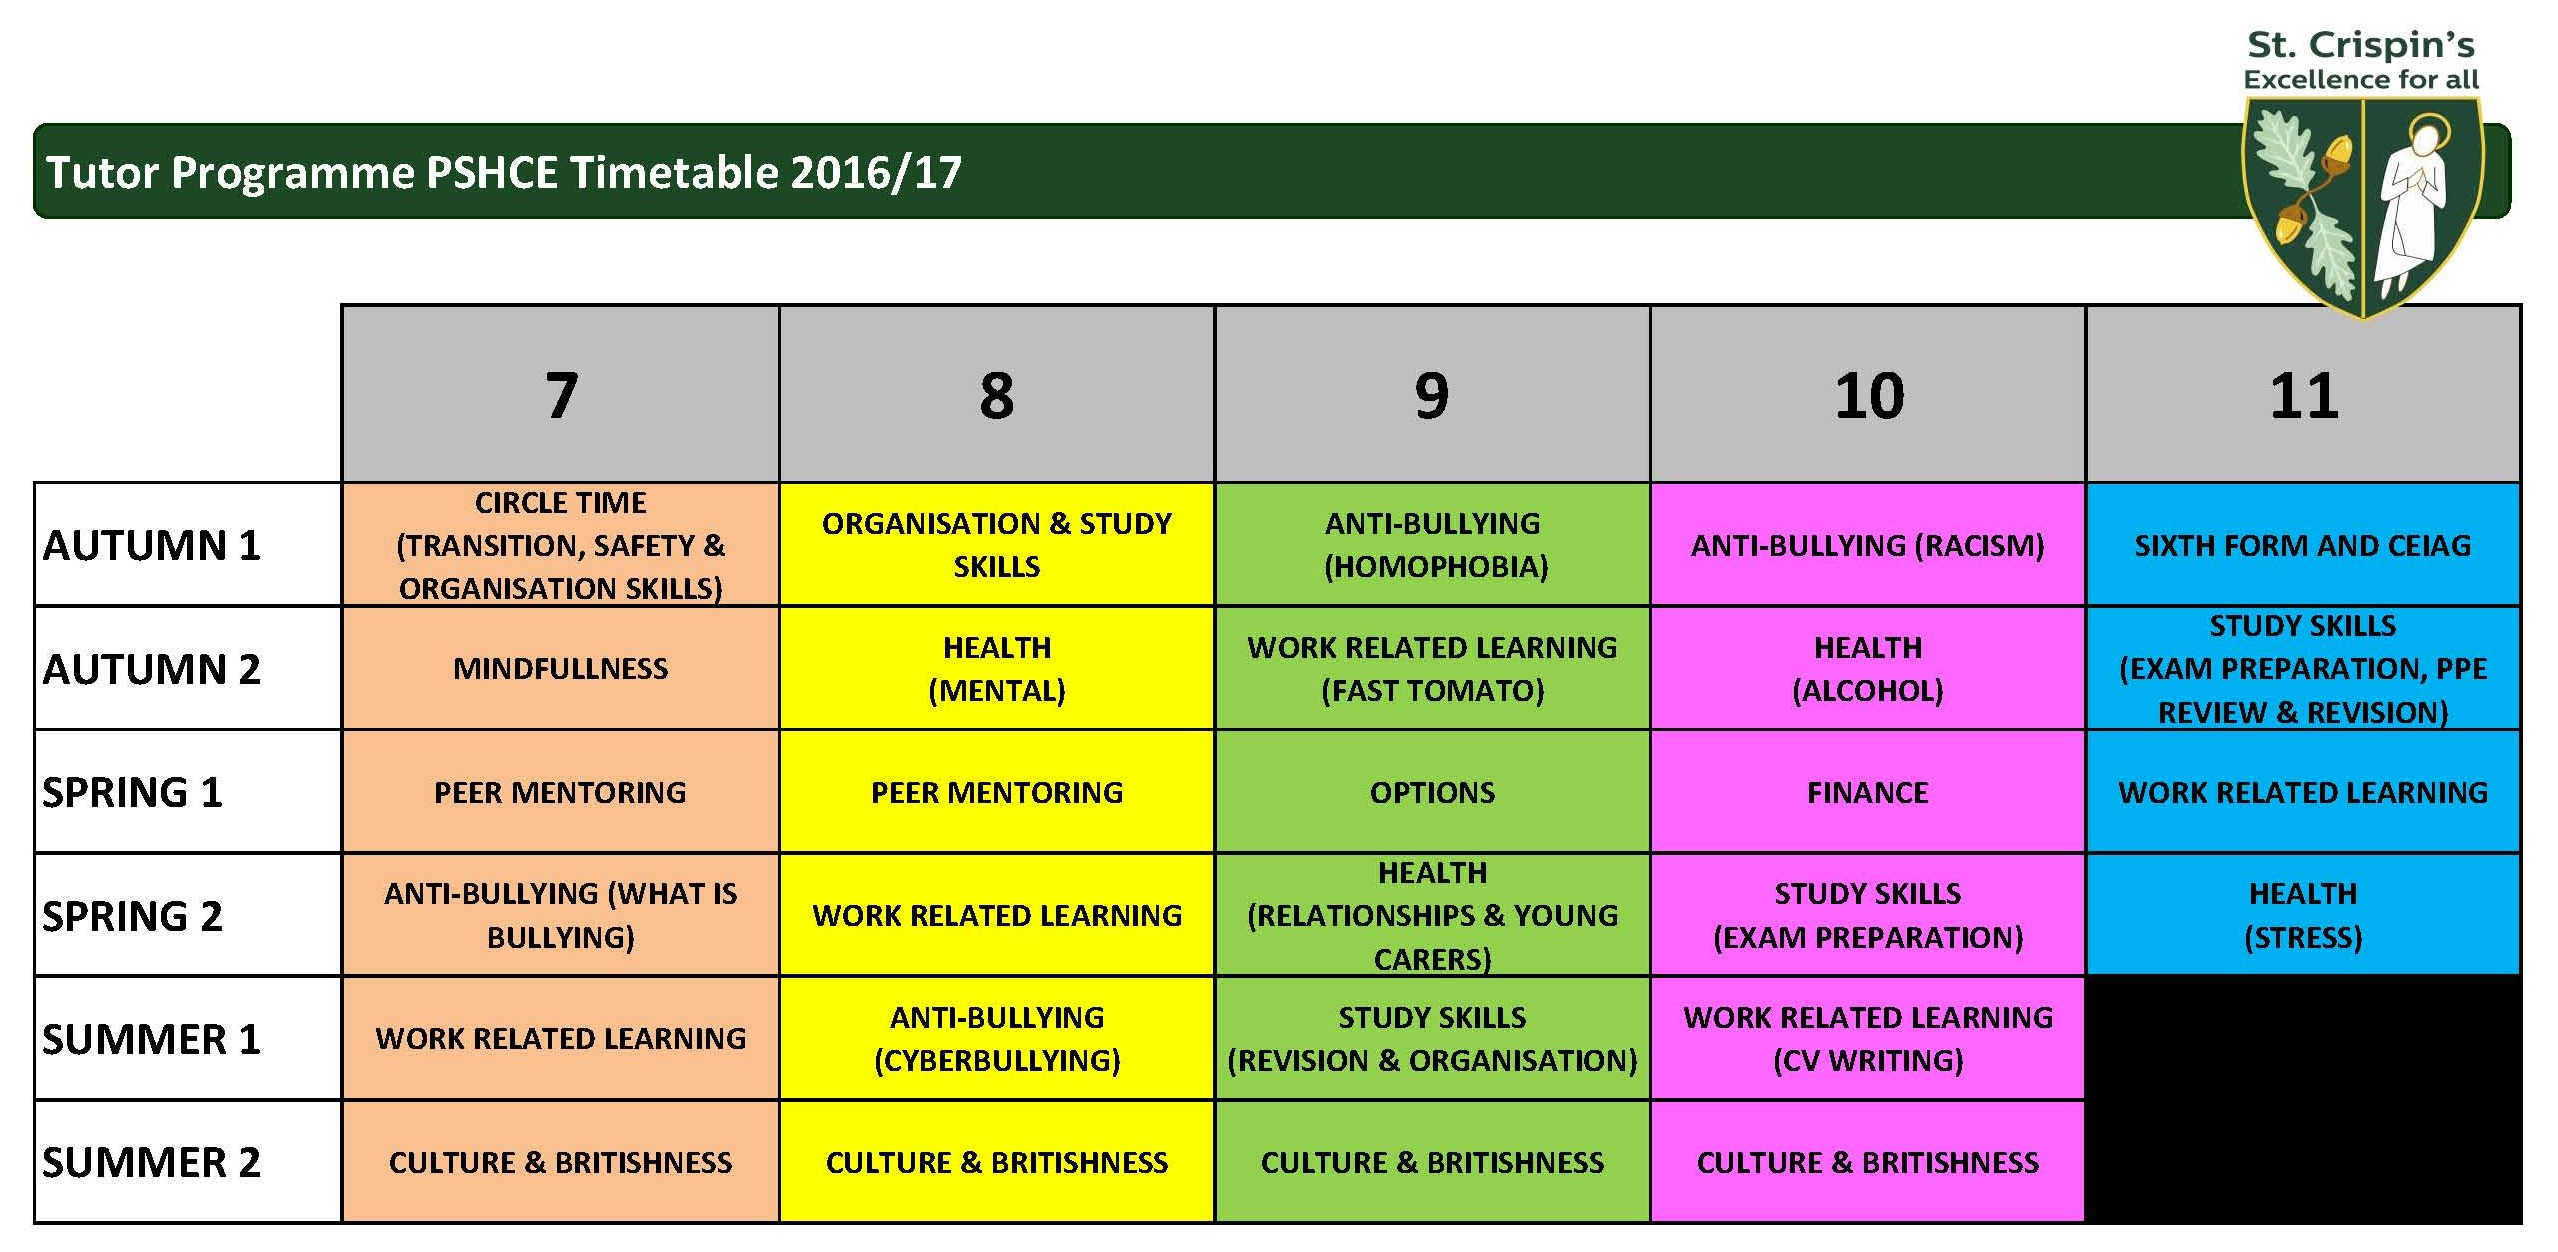 copy-of-psche-tutor-programme-2016-17_p2